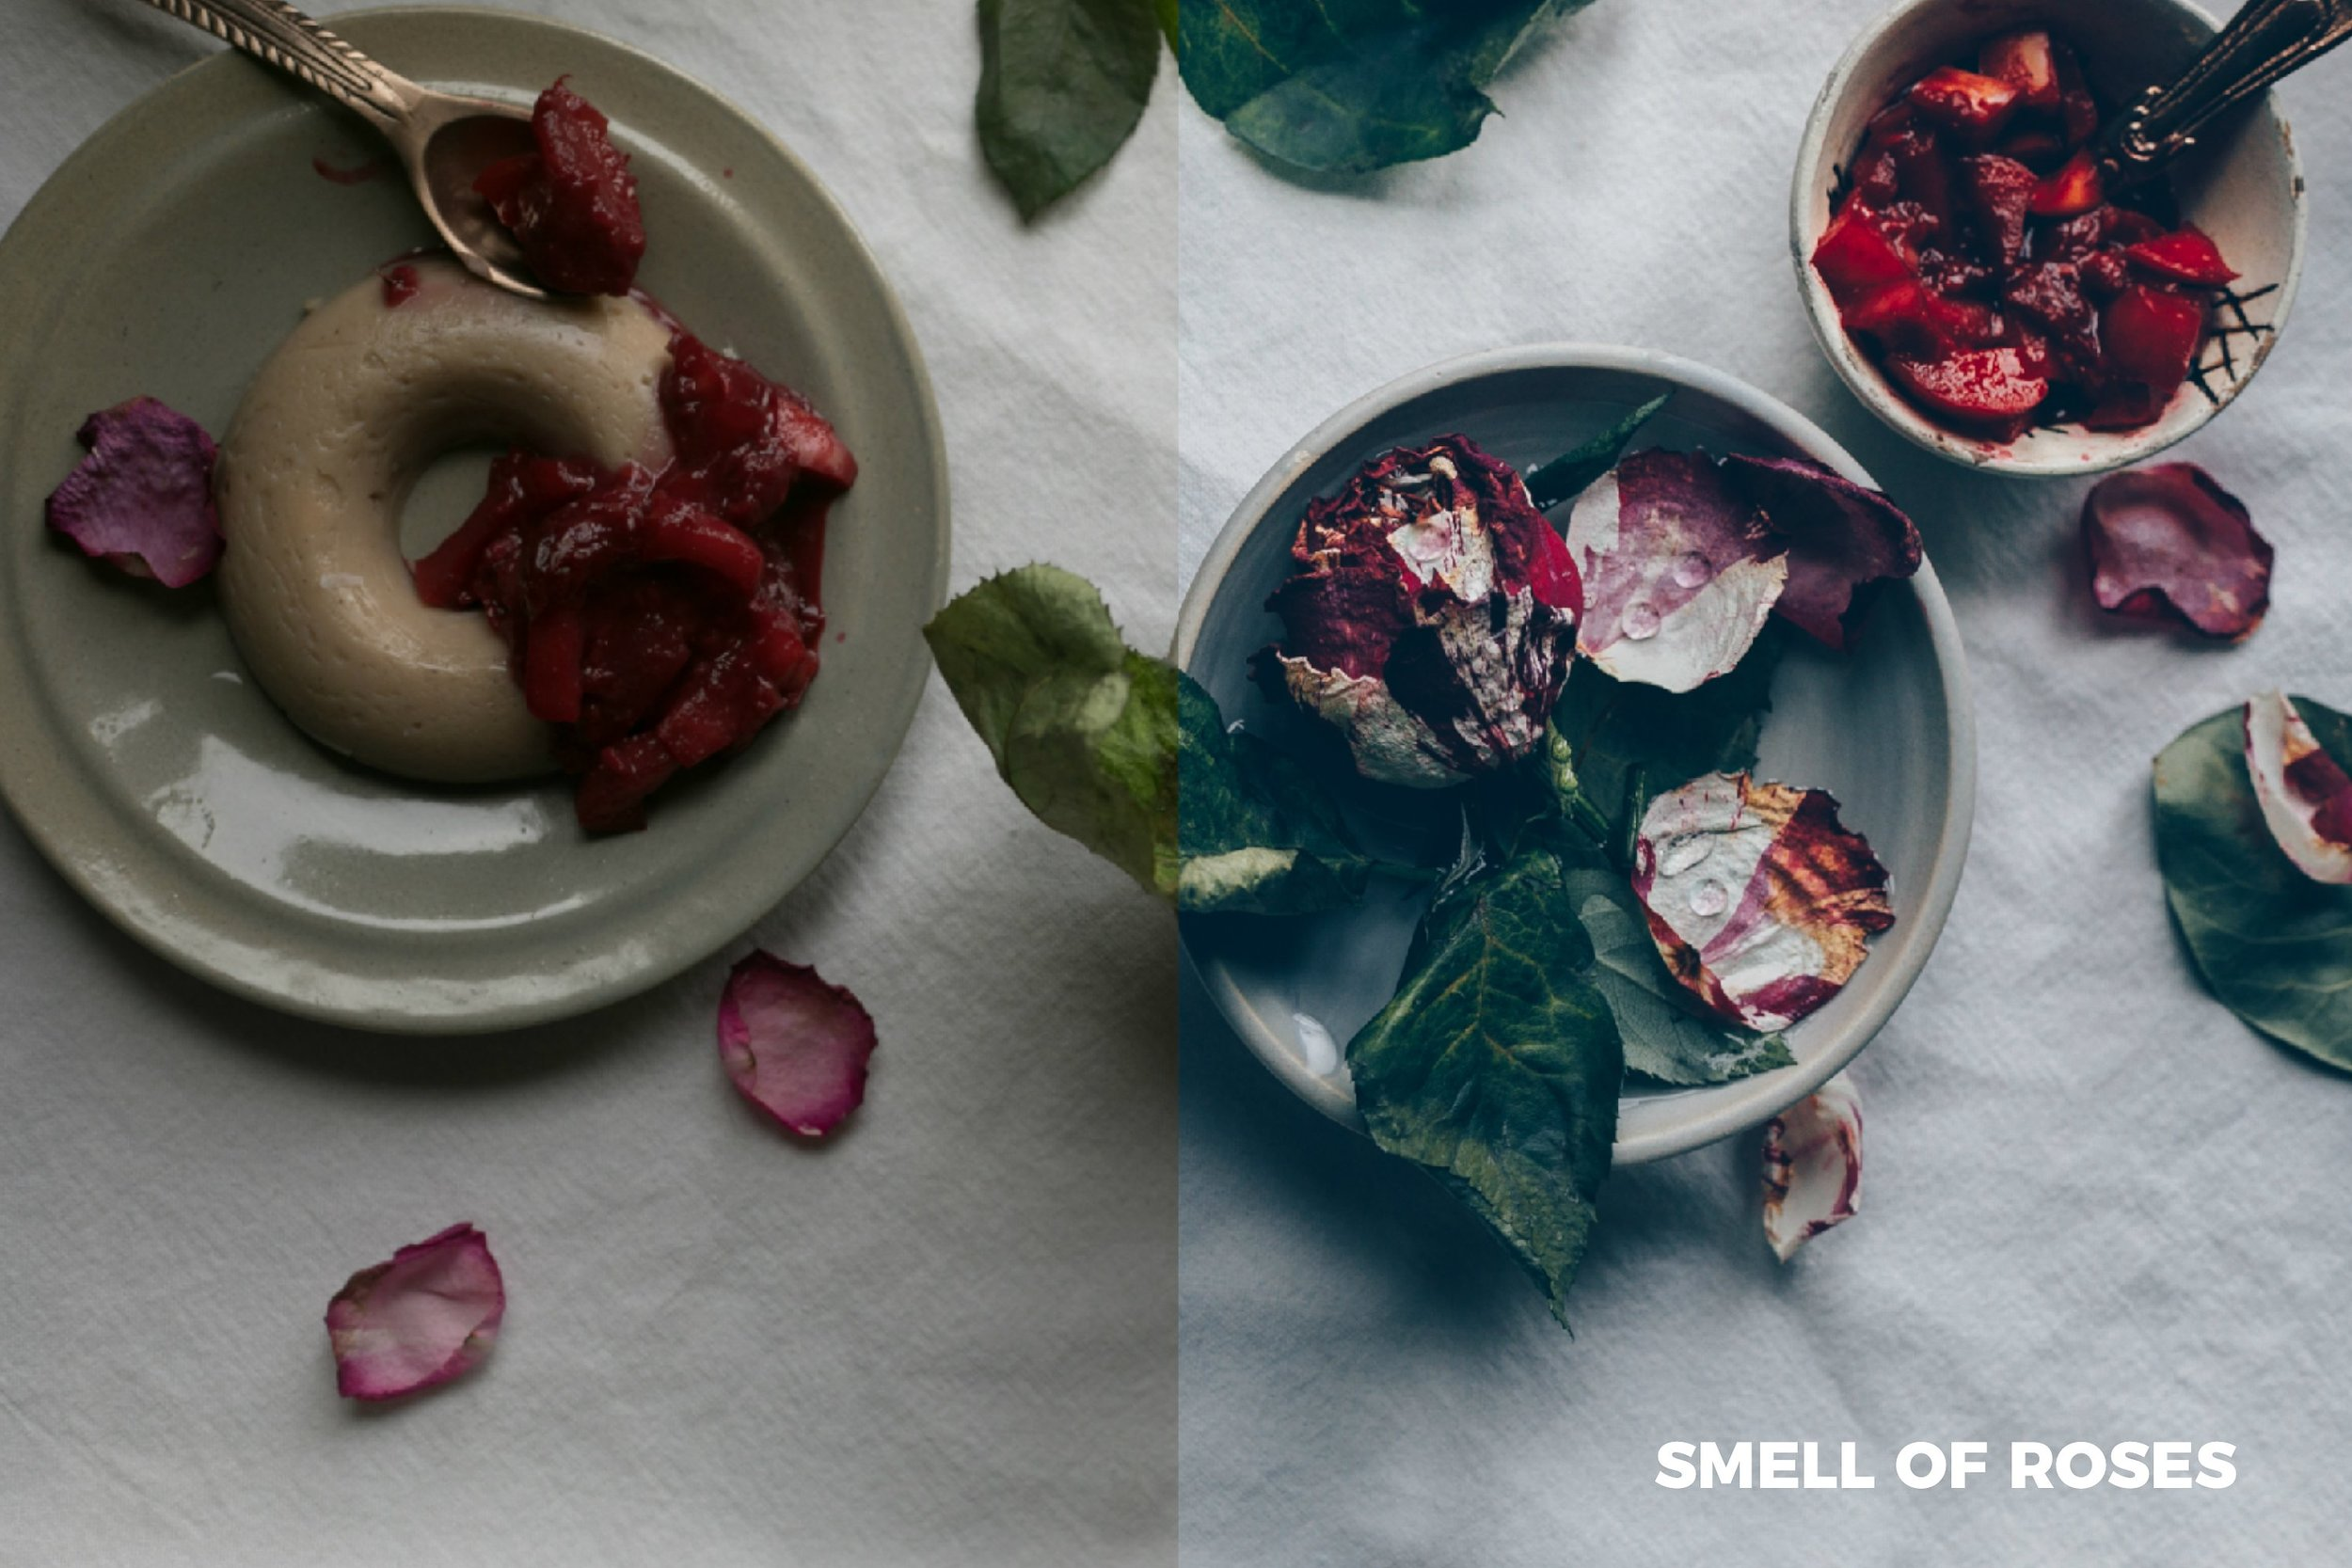 smell-of-roses-before-after-.jpg